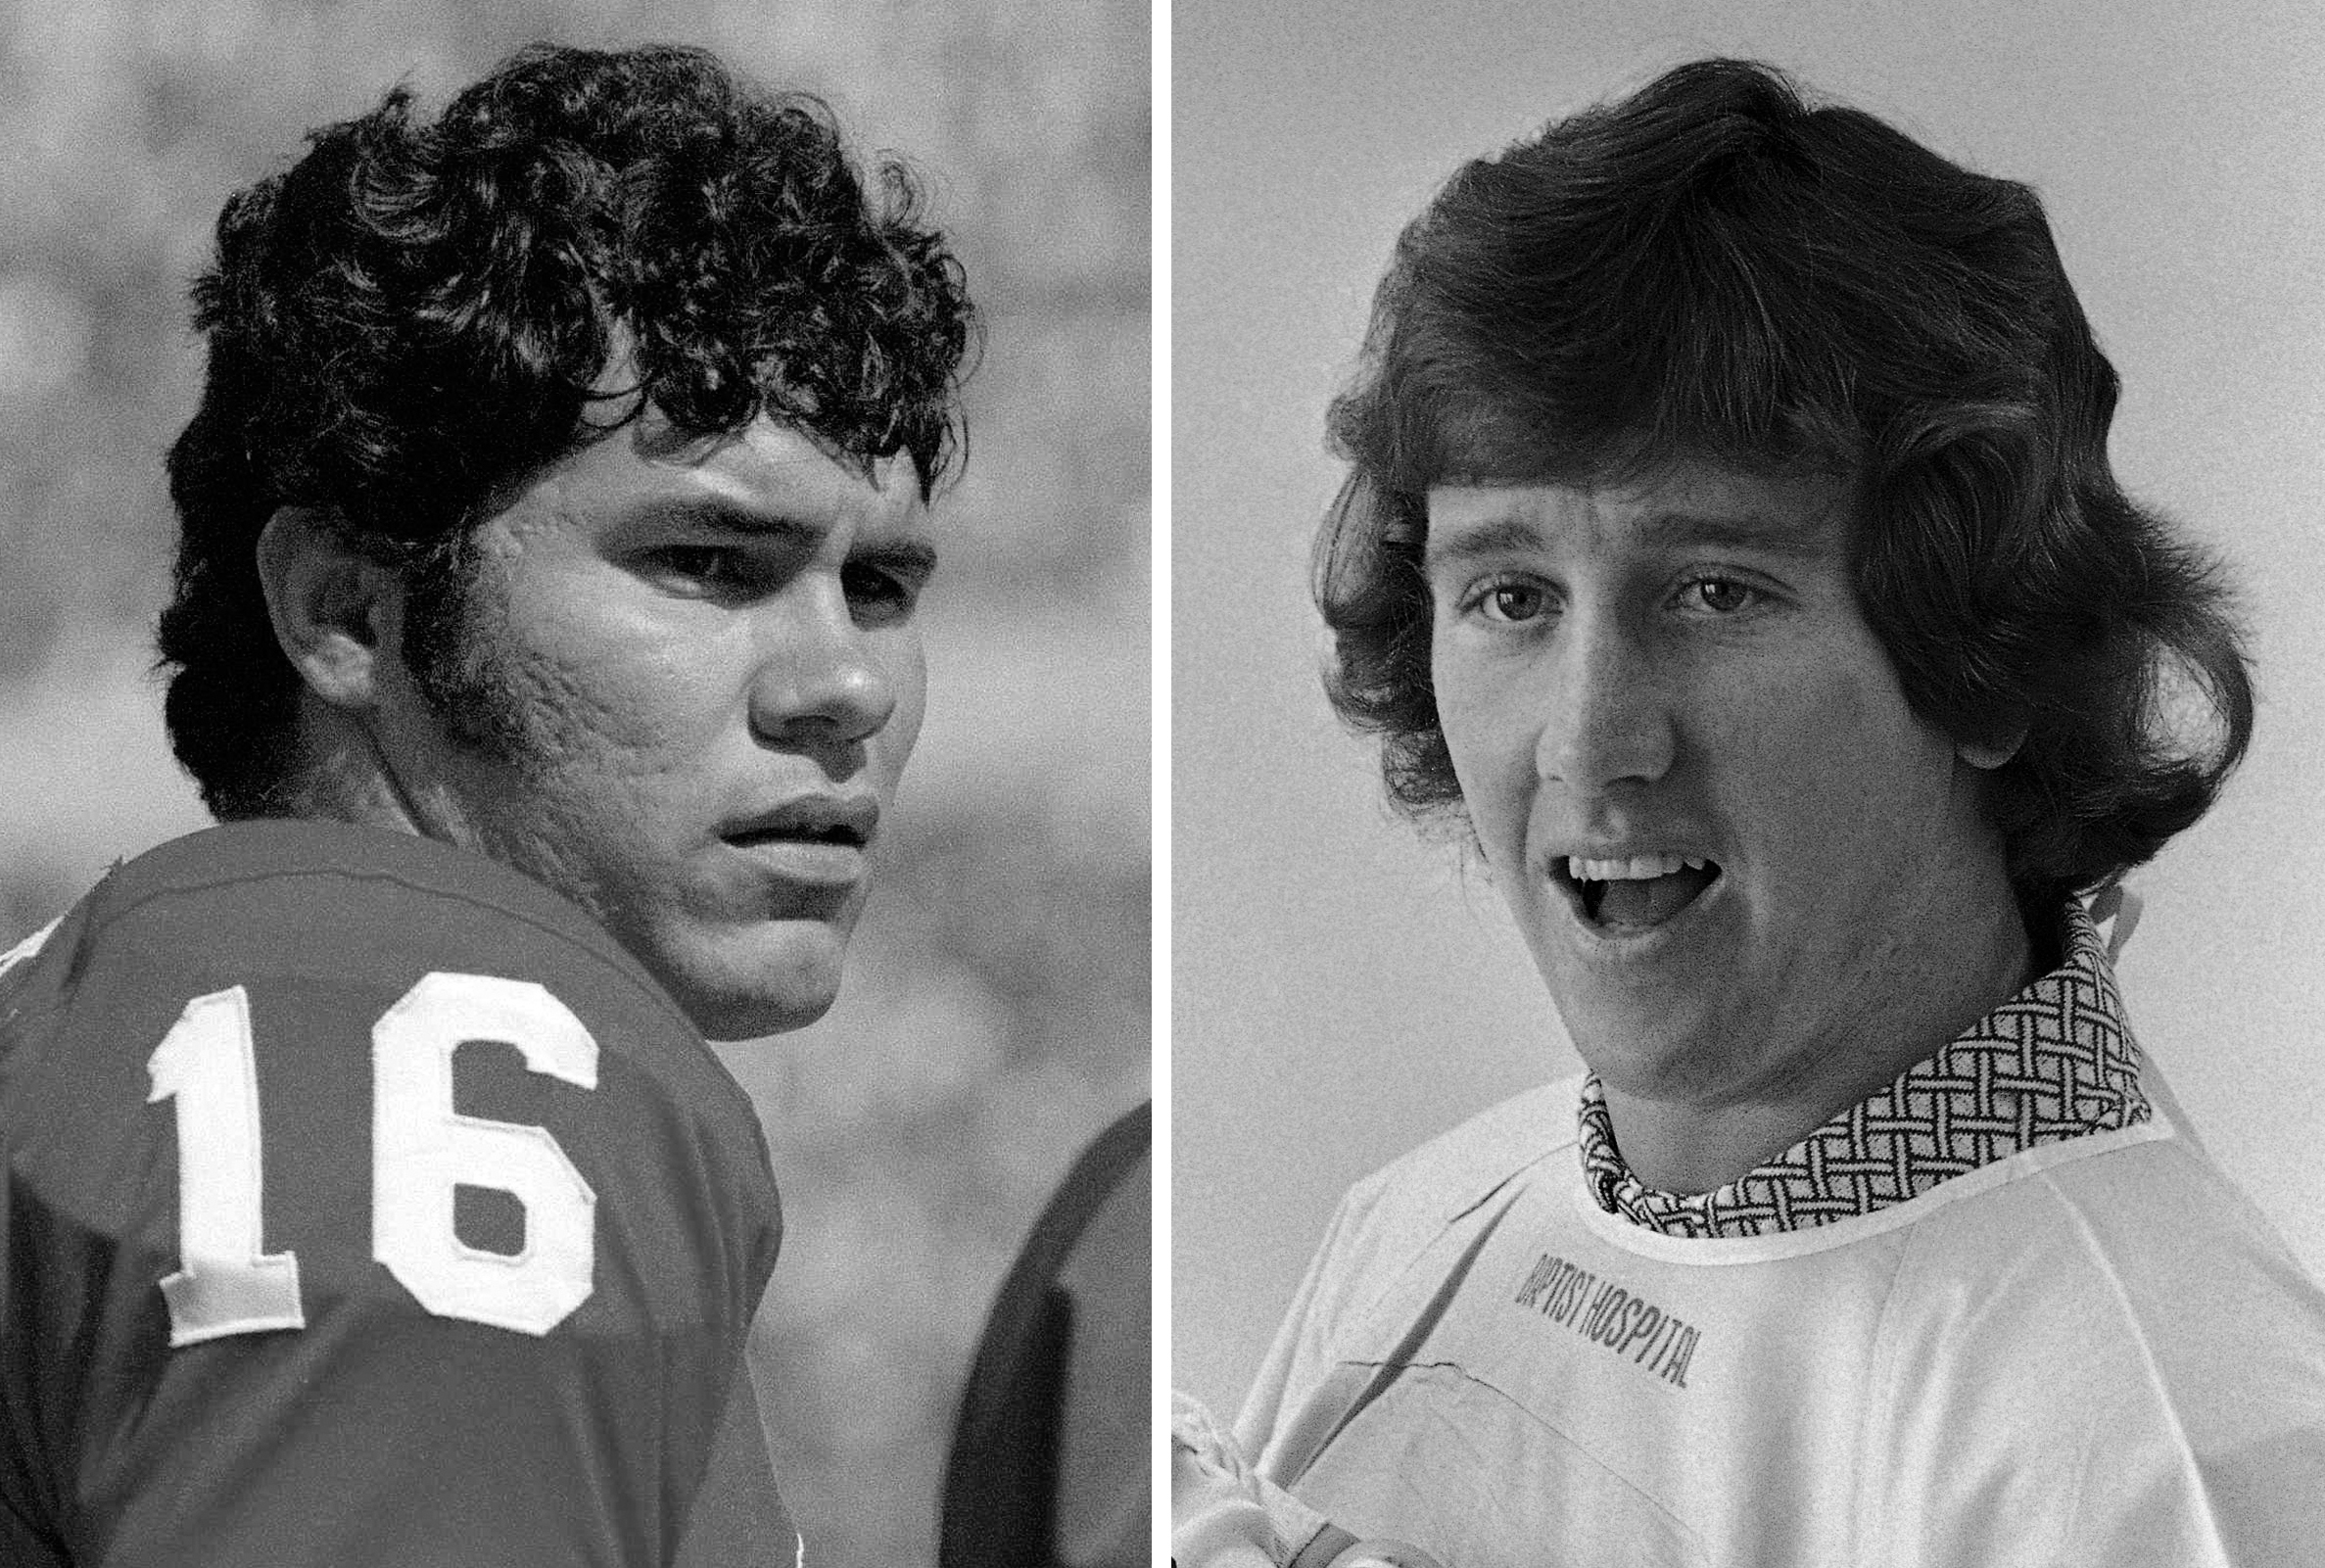 FILE - At left, in a Nov. 1971 file photo, New England Patriots quarterback Jim Plunkett is shown. At right, in a March 7, 1974, file photo, New Orleans Saints quarterback Archie Manning is shown. Plunkett and Manning were drafted back-to-back as No. 1 an